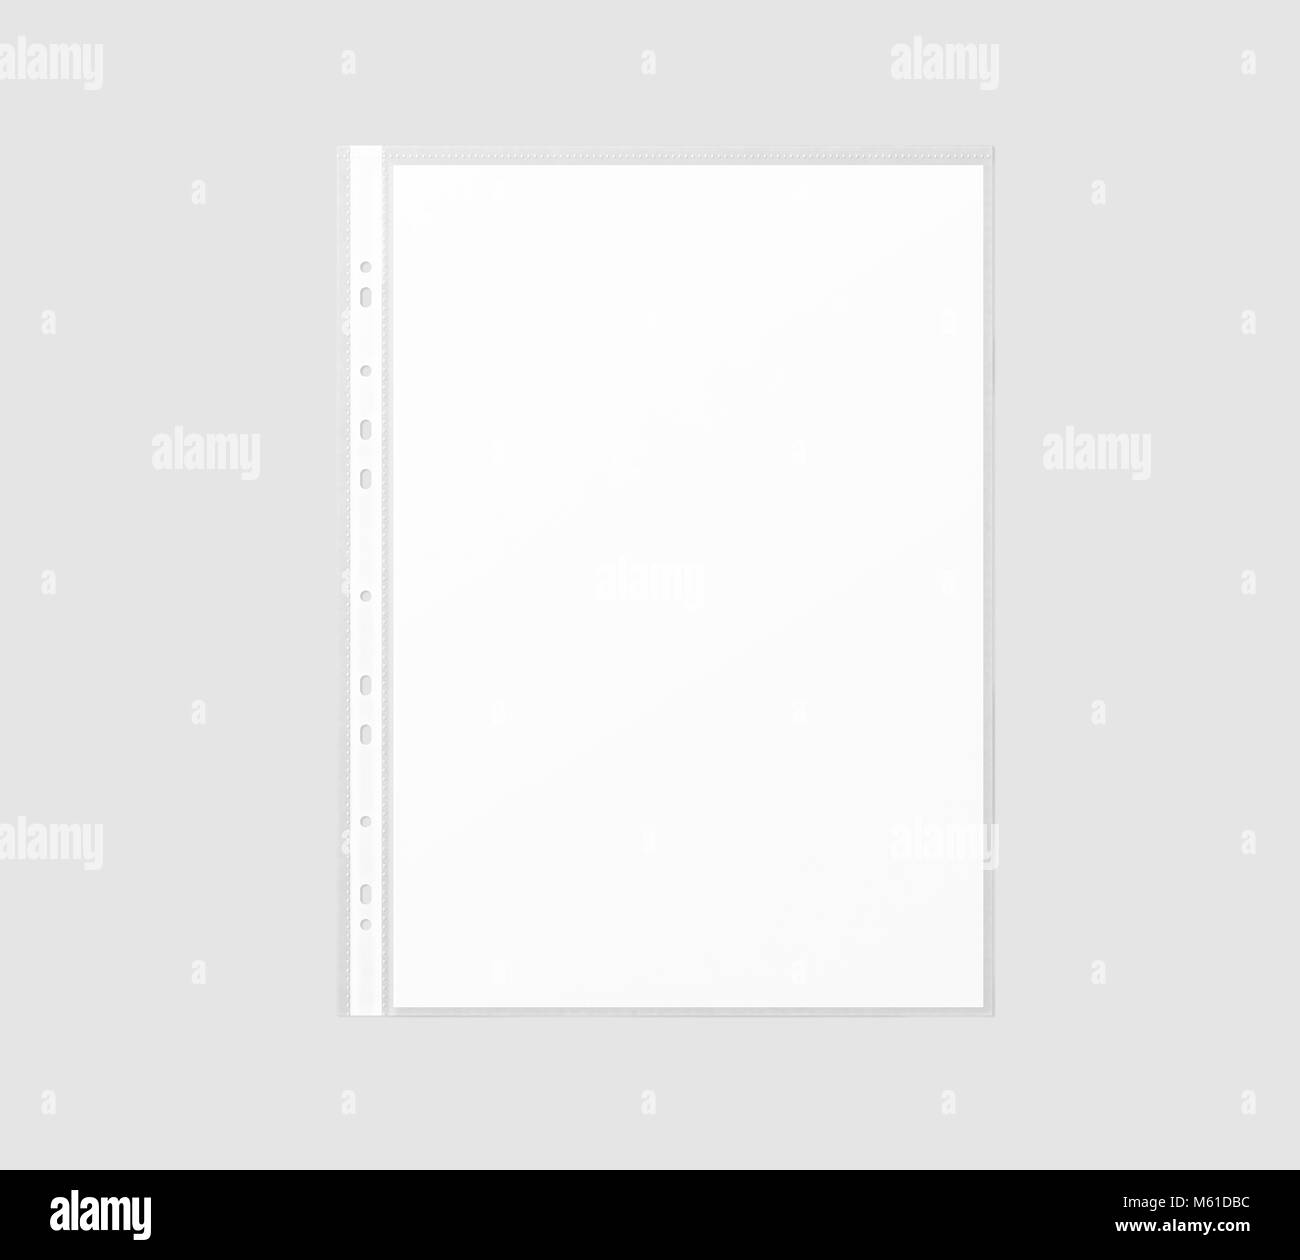 Pocket protector stock photos pocket protector stock images alamy blank white a4 paper sheet mockup in transparent plastic sleeve 3d rendering cellophane document buycottarizona